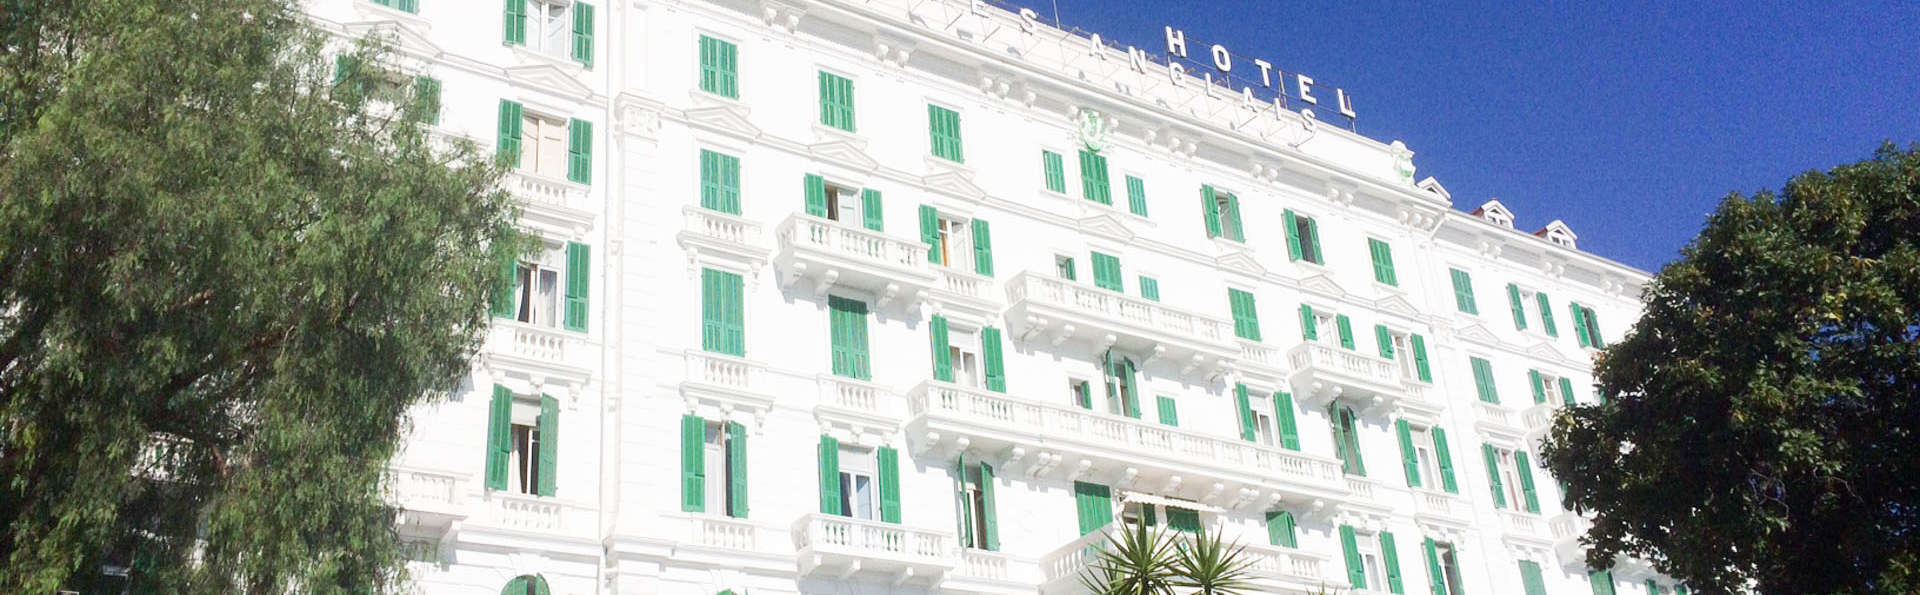 Grand Hotel & Des Anglais - EDIT_Front.jpg